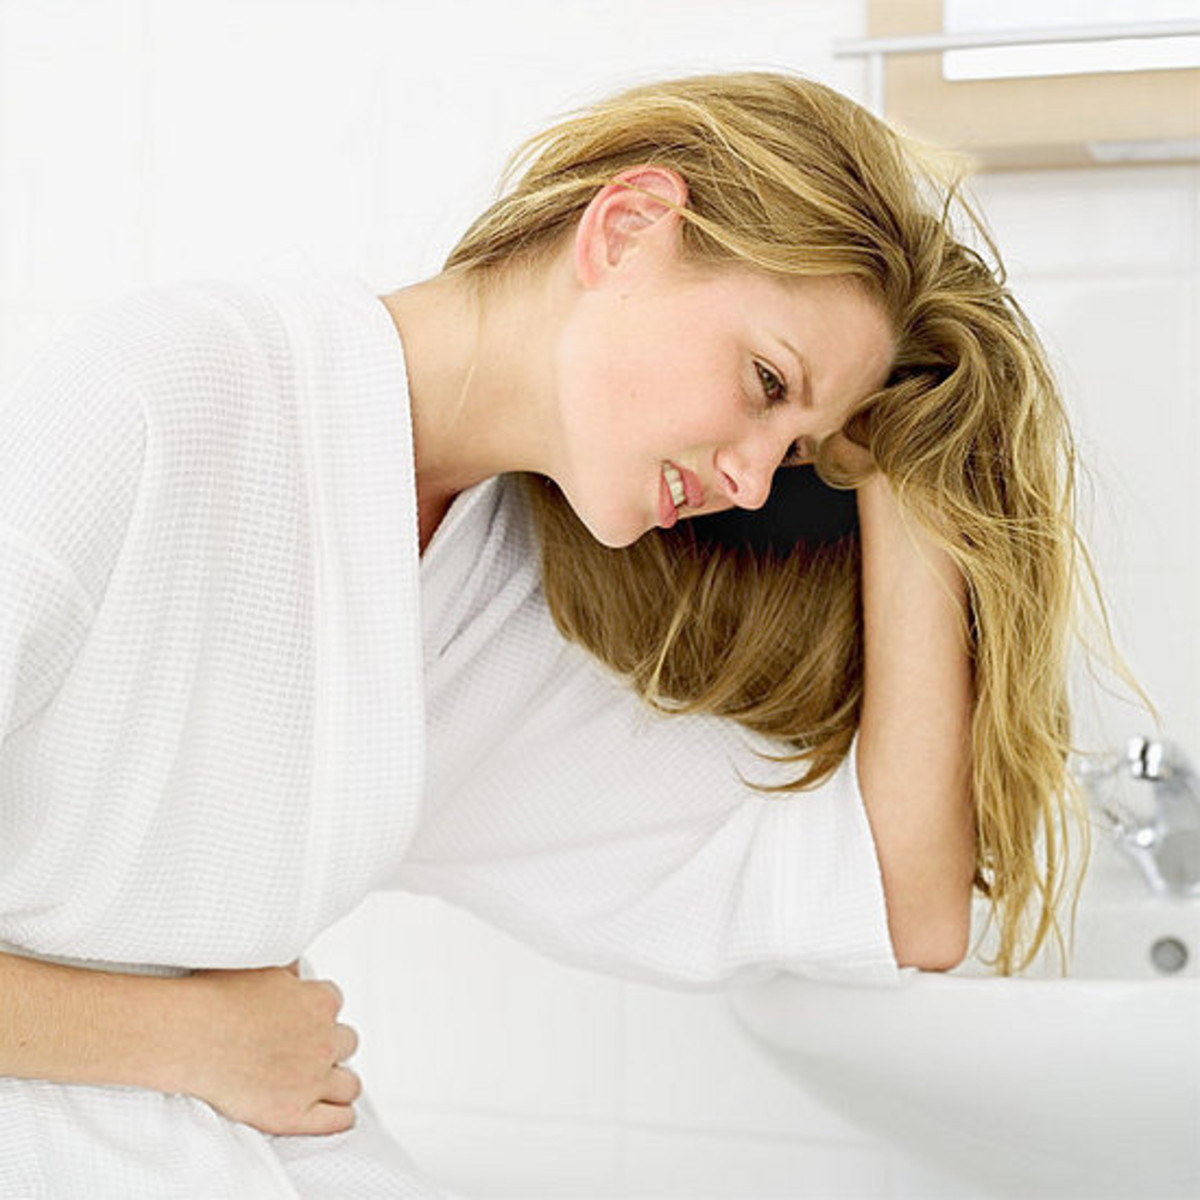 Is cramping during pregnancy something you should be worried about? Read up to understand the different types of cramping during pregnancy.